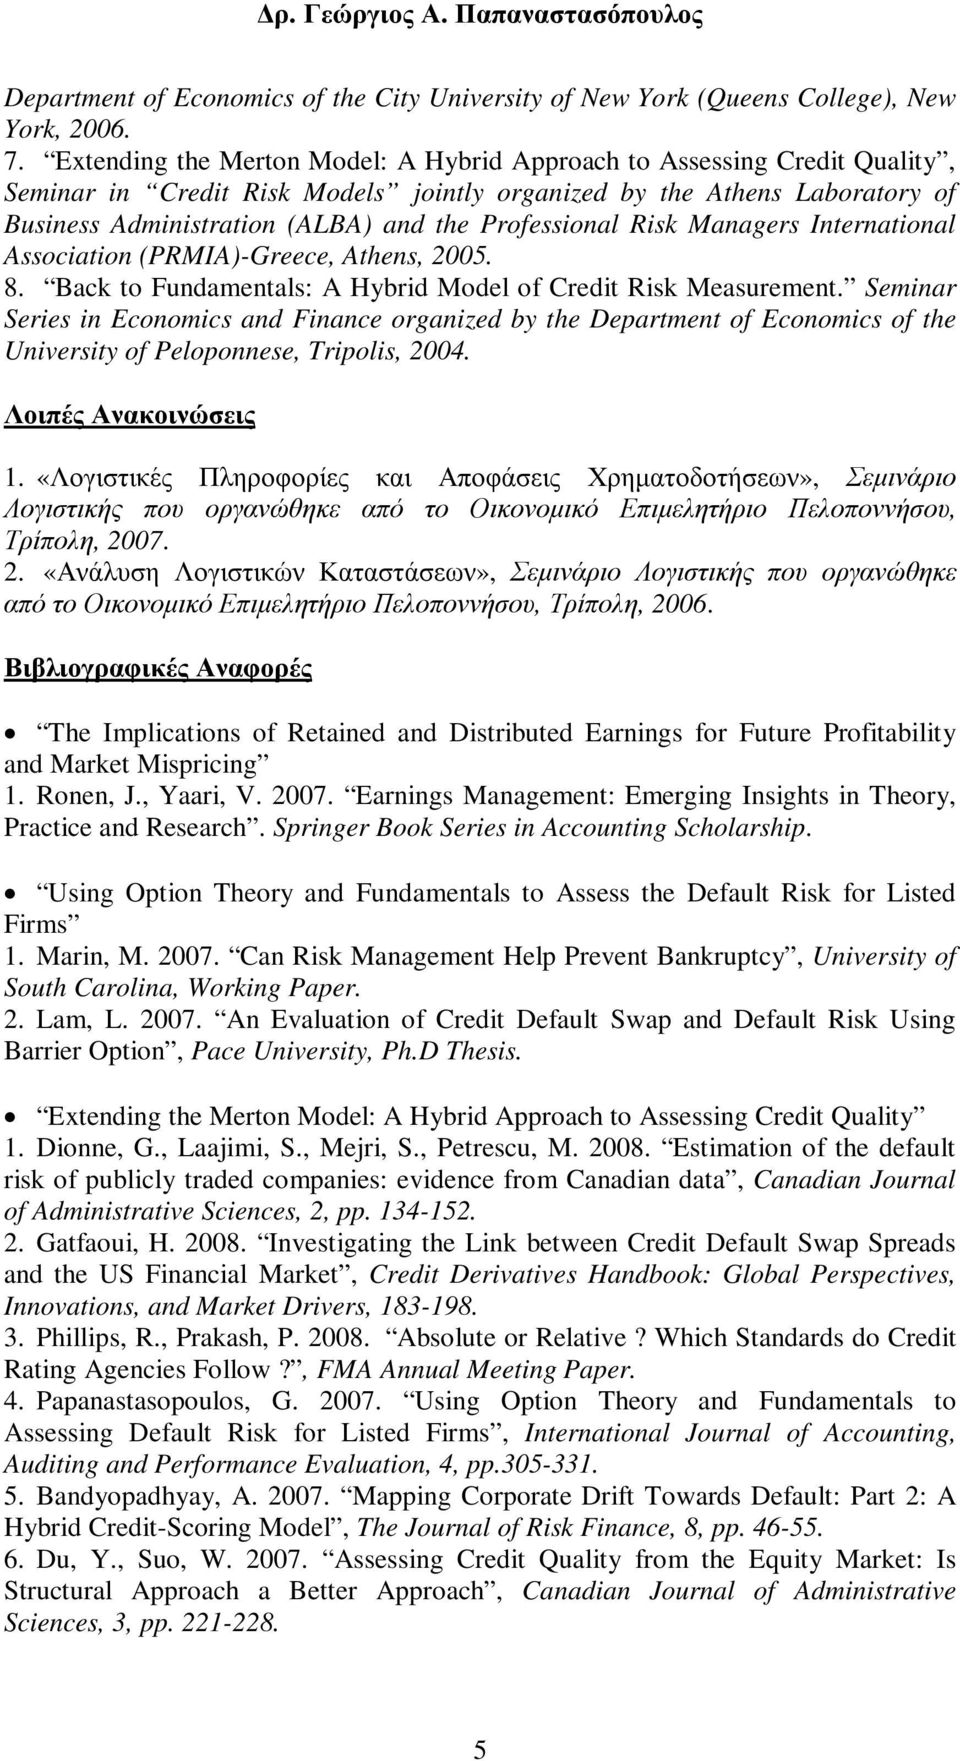 Professional Risk Managers International Association (PRMIA)-Greece, Athens, 2005. 8. Back to Fundamentals: A Hybrid Model of Credit Risk Measurement.